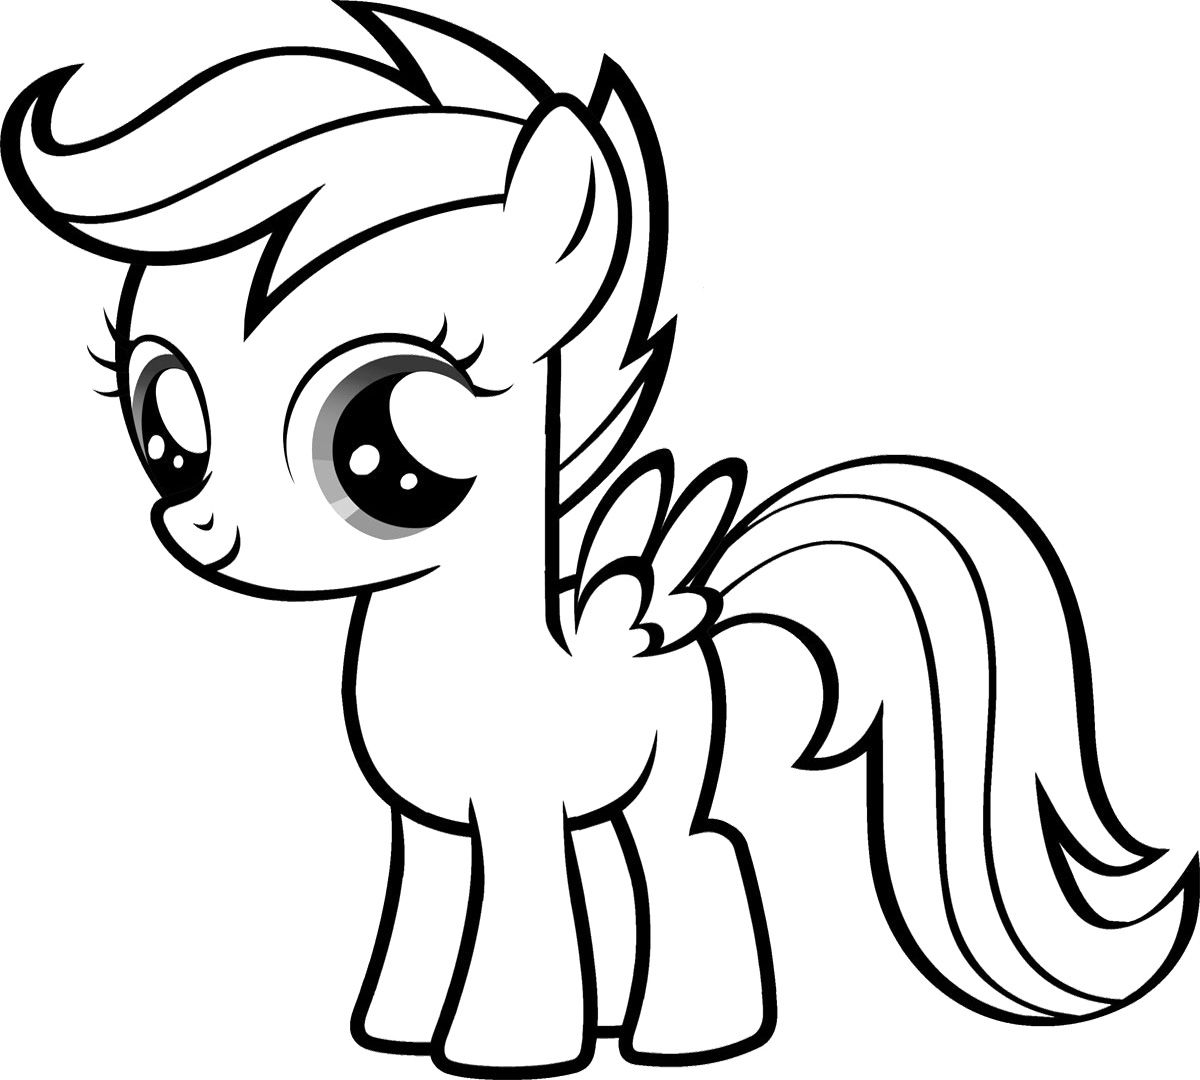 Magical unicorn coloring pages - Free Coloring Pages Of Blank Pony